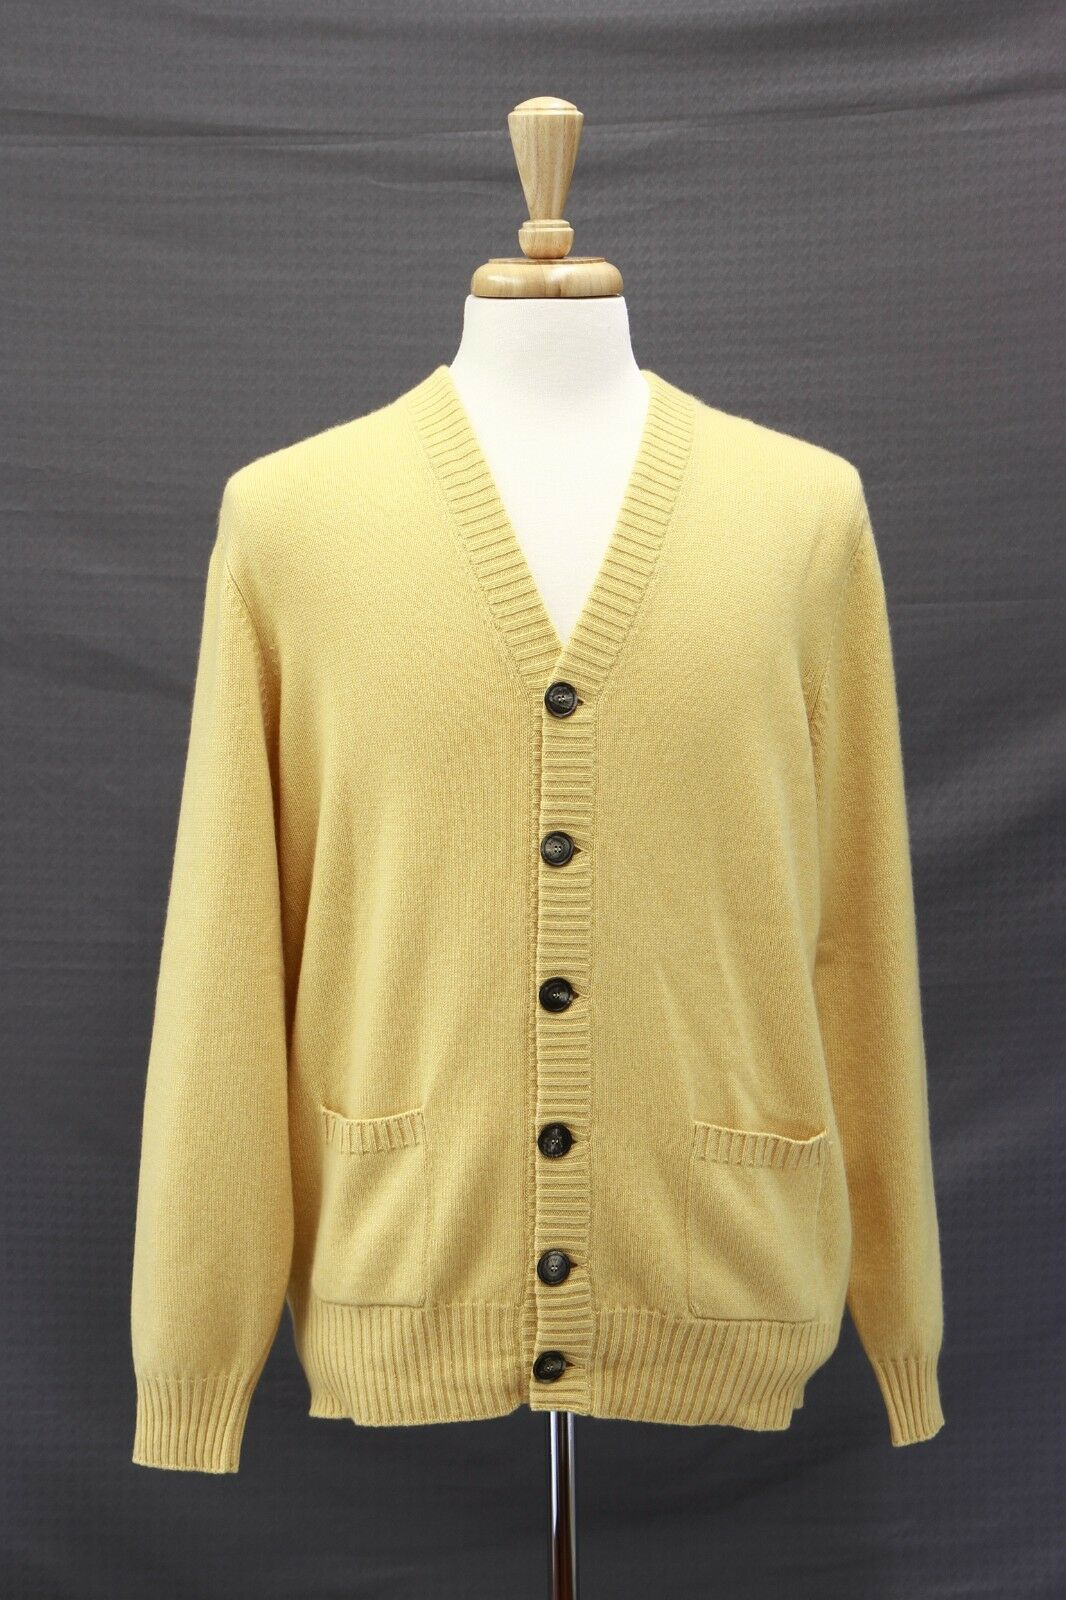 NWT2445 Brunello Cucinelli 100% Cashmere Knit Logo Button Cardigan 50/40US A181